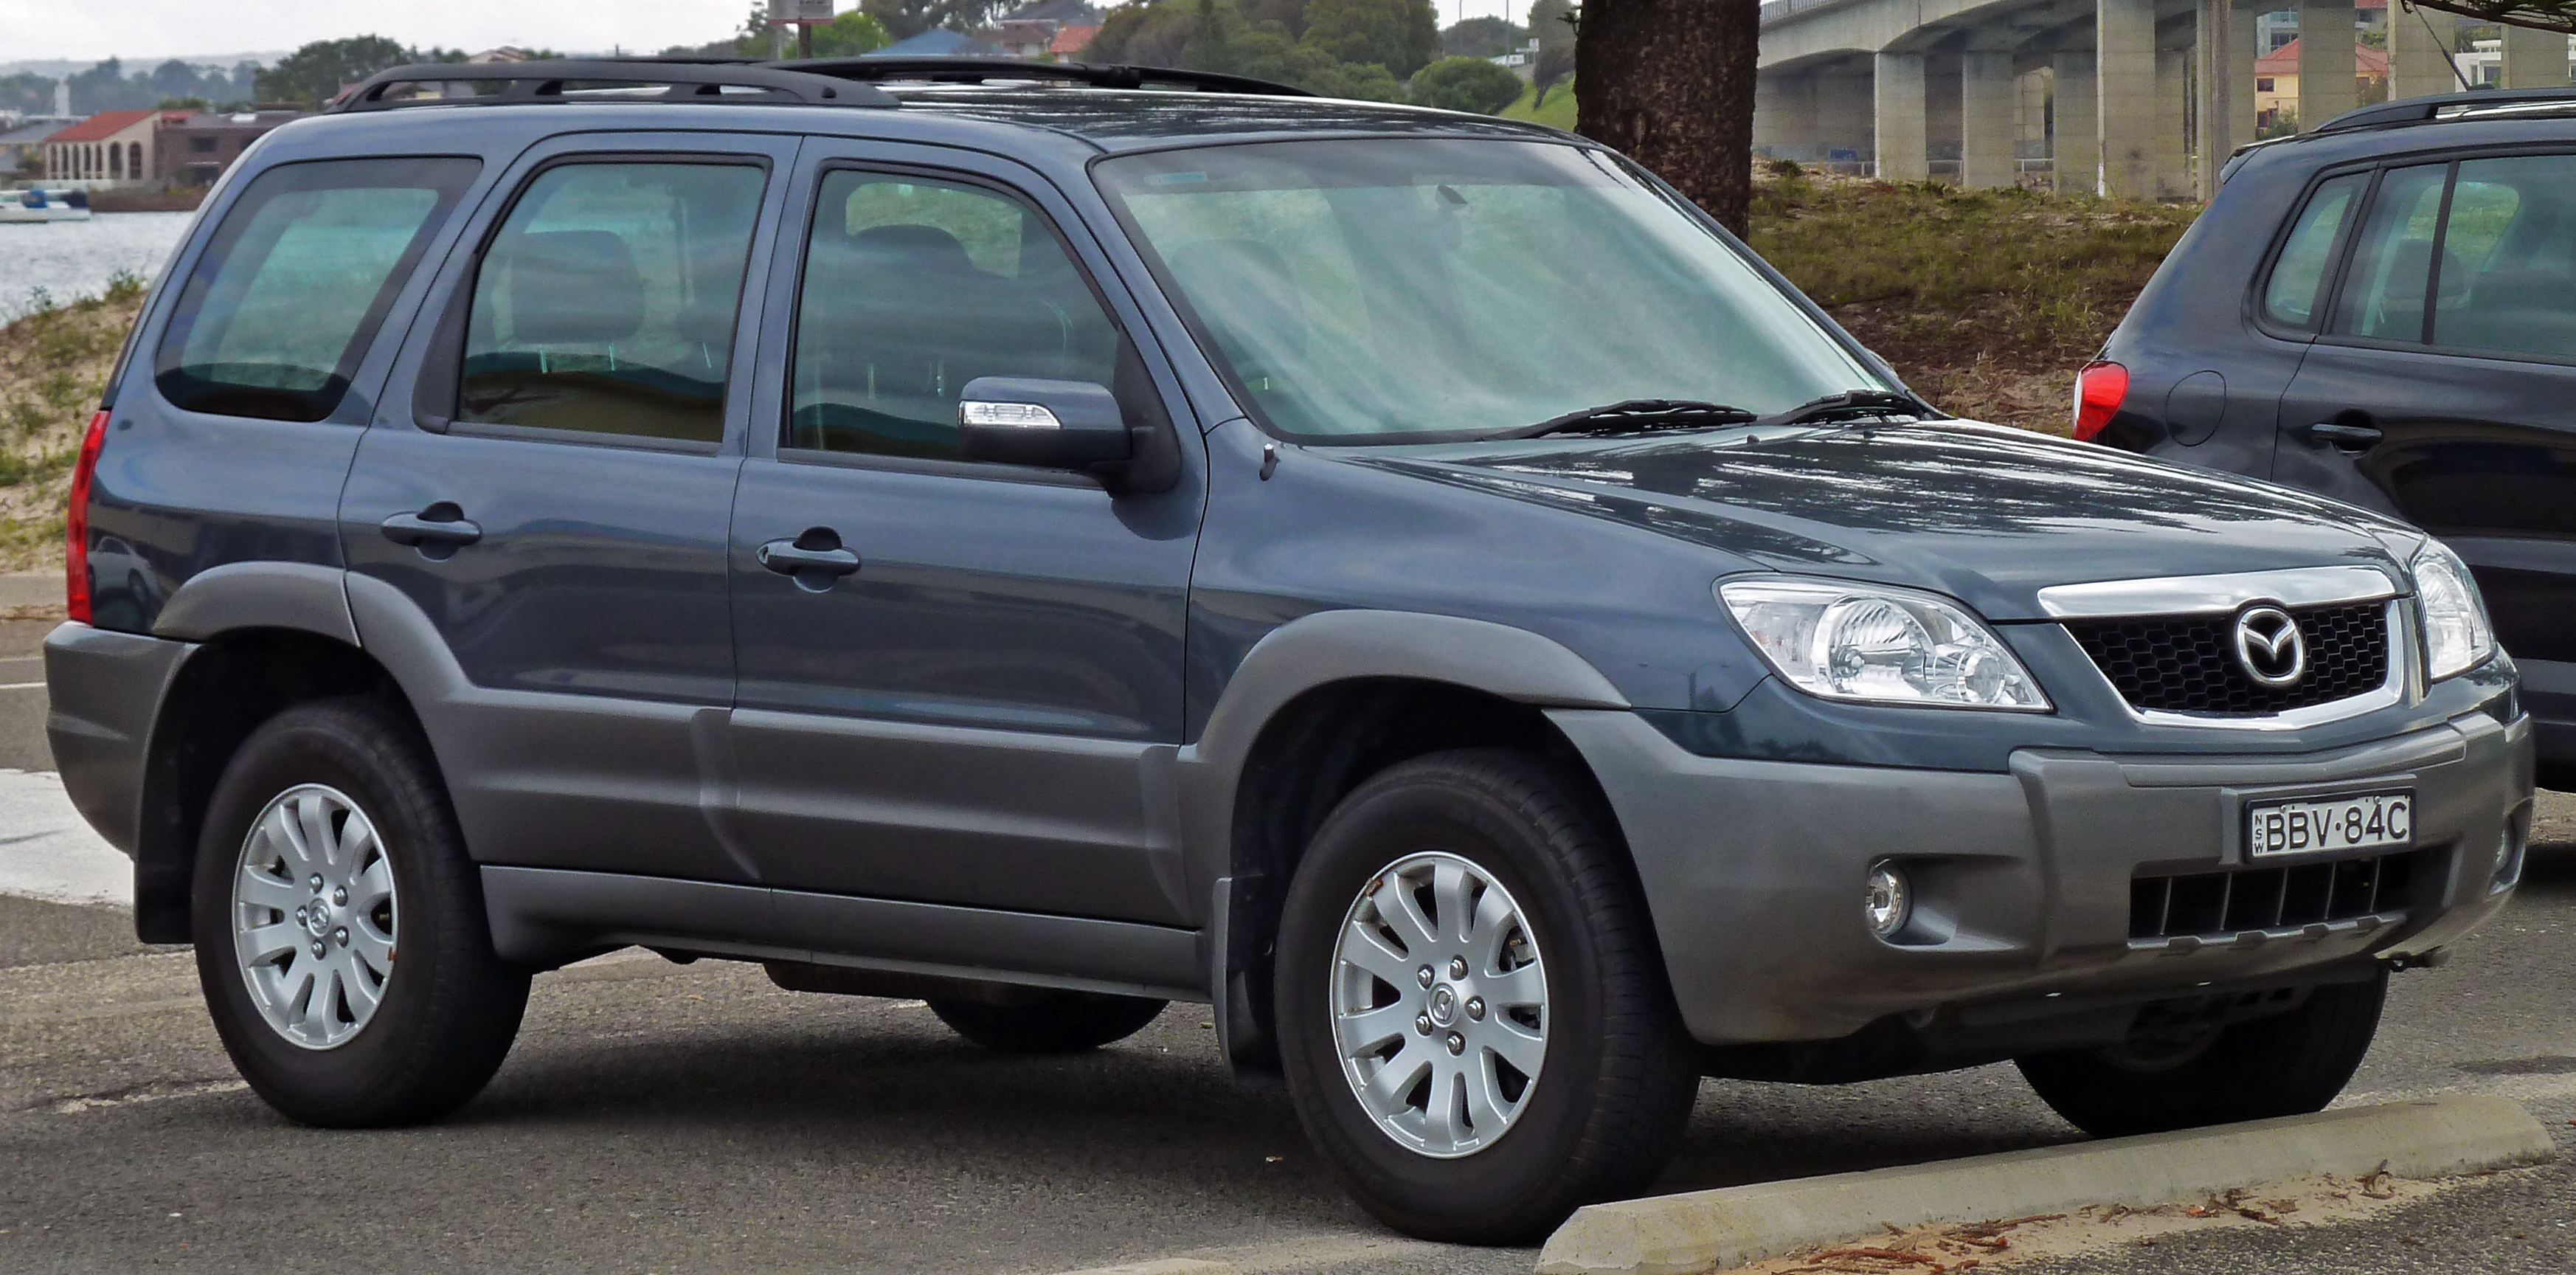 Mazda tribute 2012 photo - 4